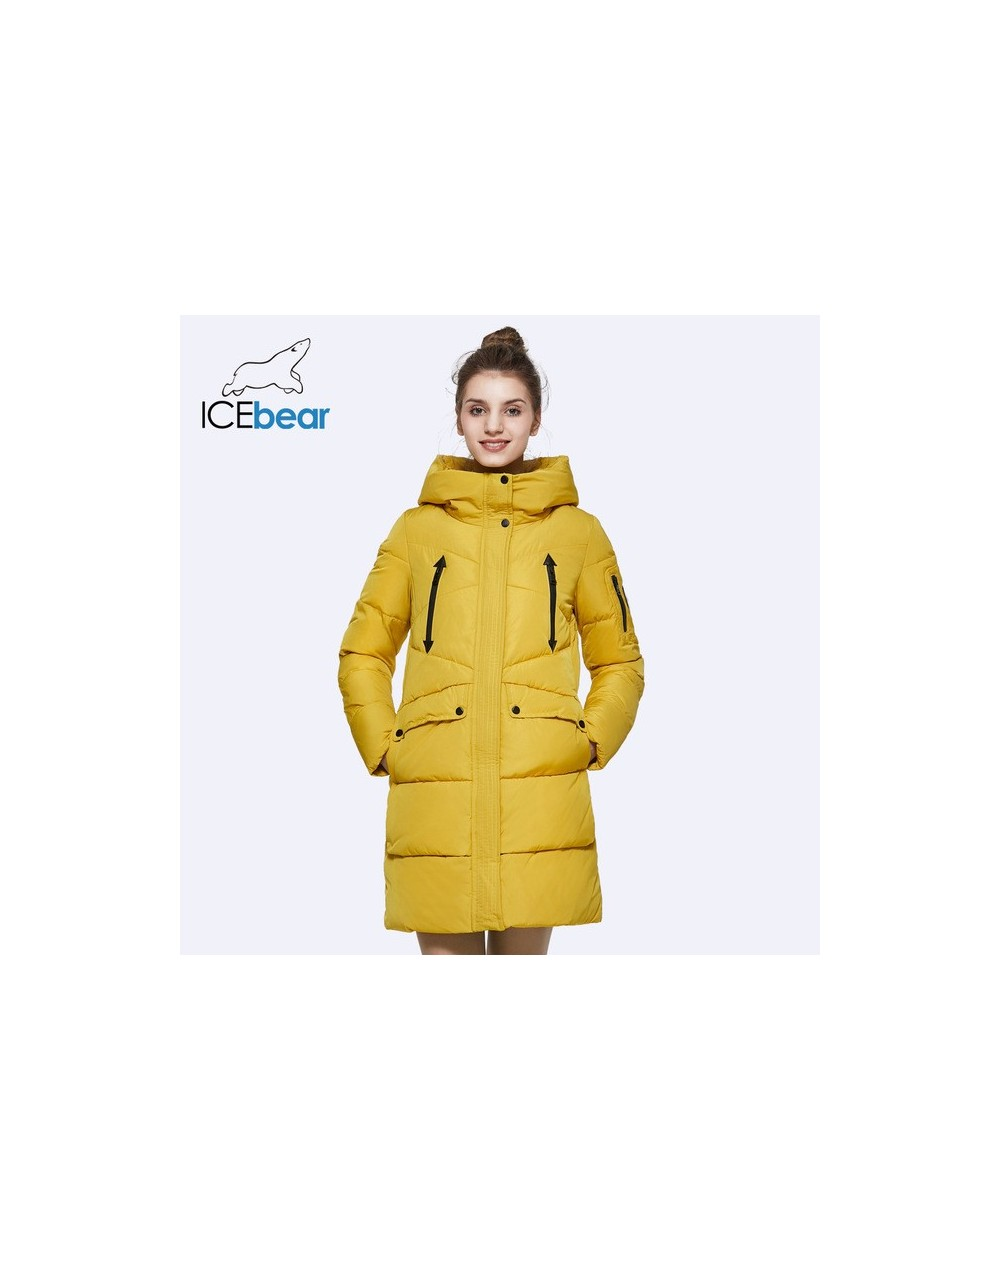 2019 New Women Winter Jacket Coat Slim Winter Quilted Coat Long Style Hood Slim Parkas Thicken Outerwear B16G6155D - 16505 y...